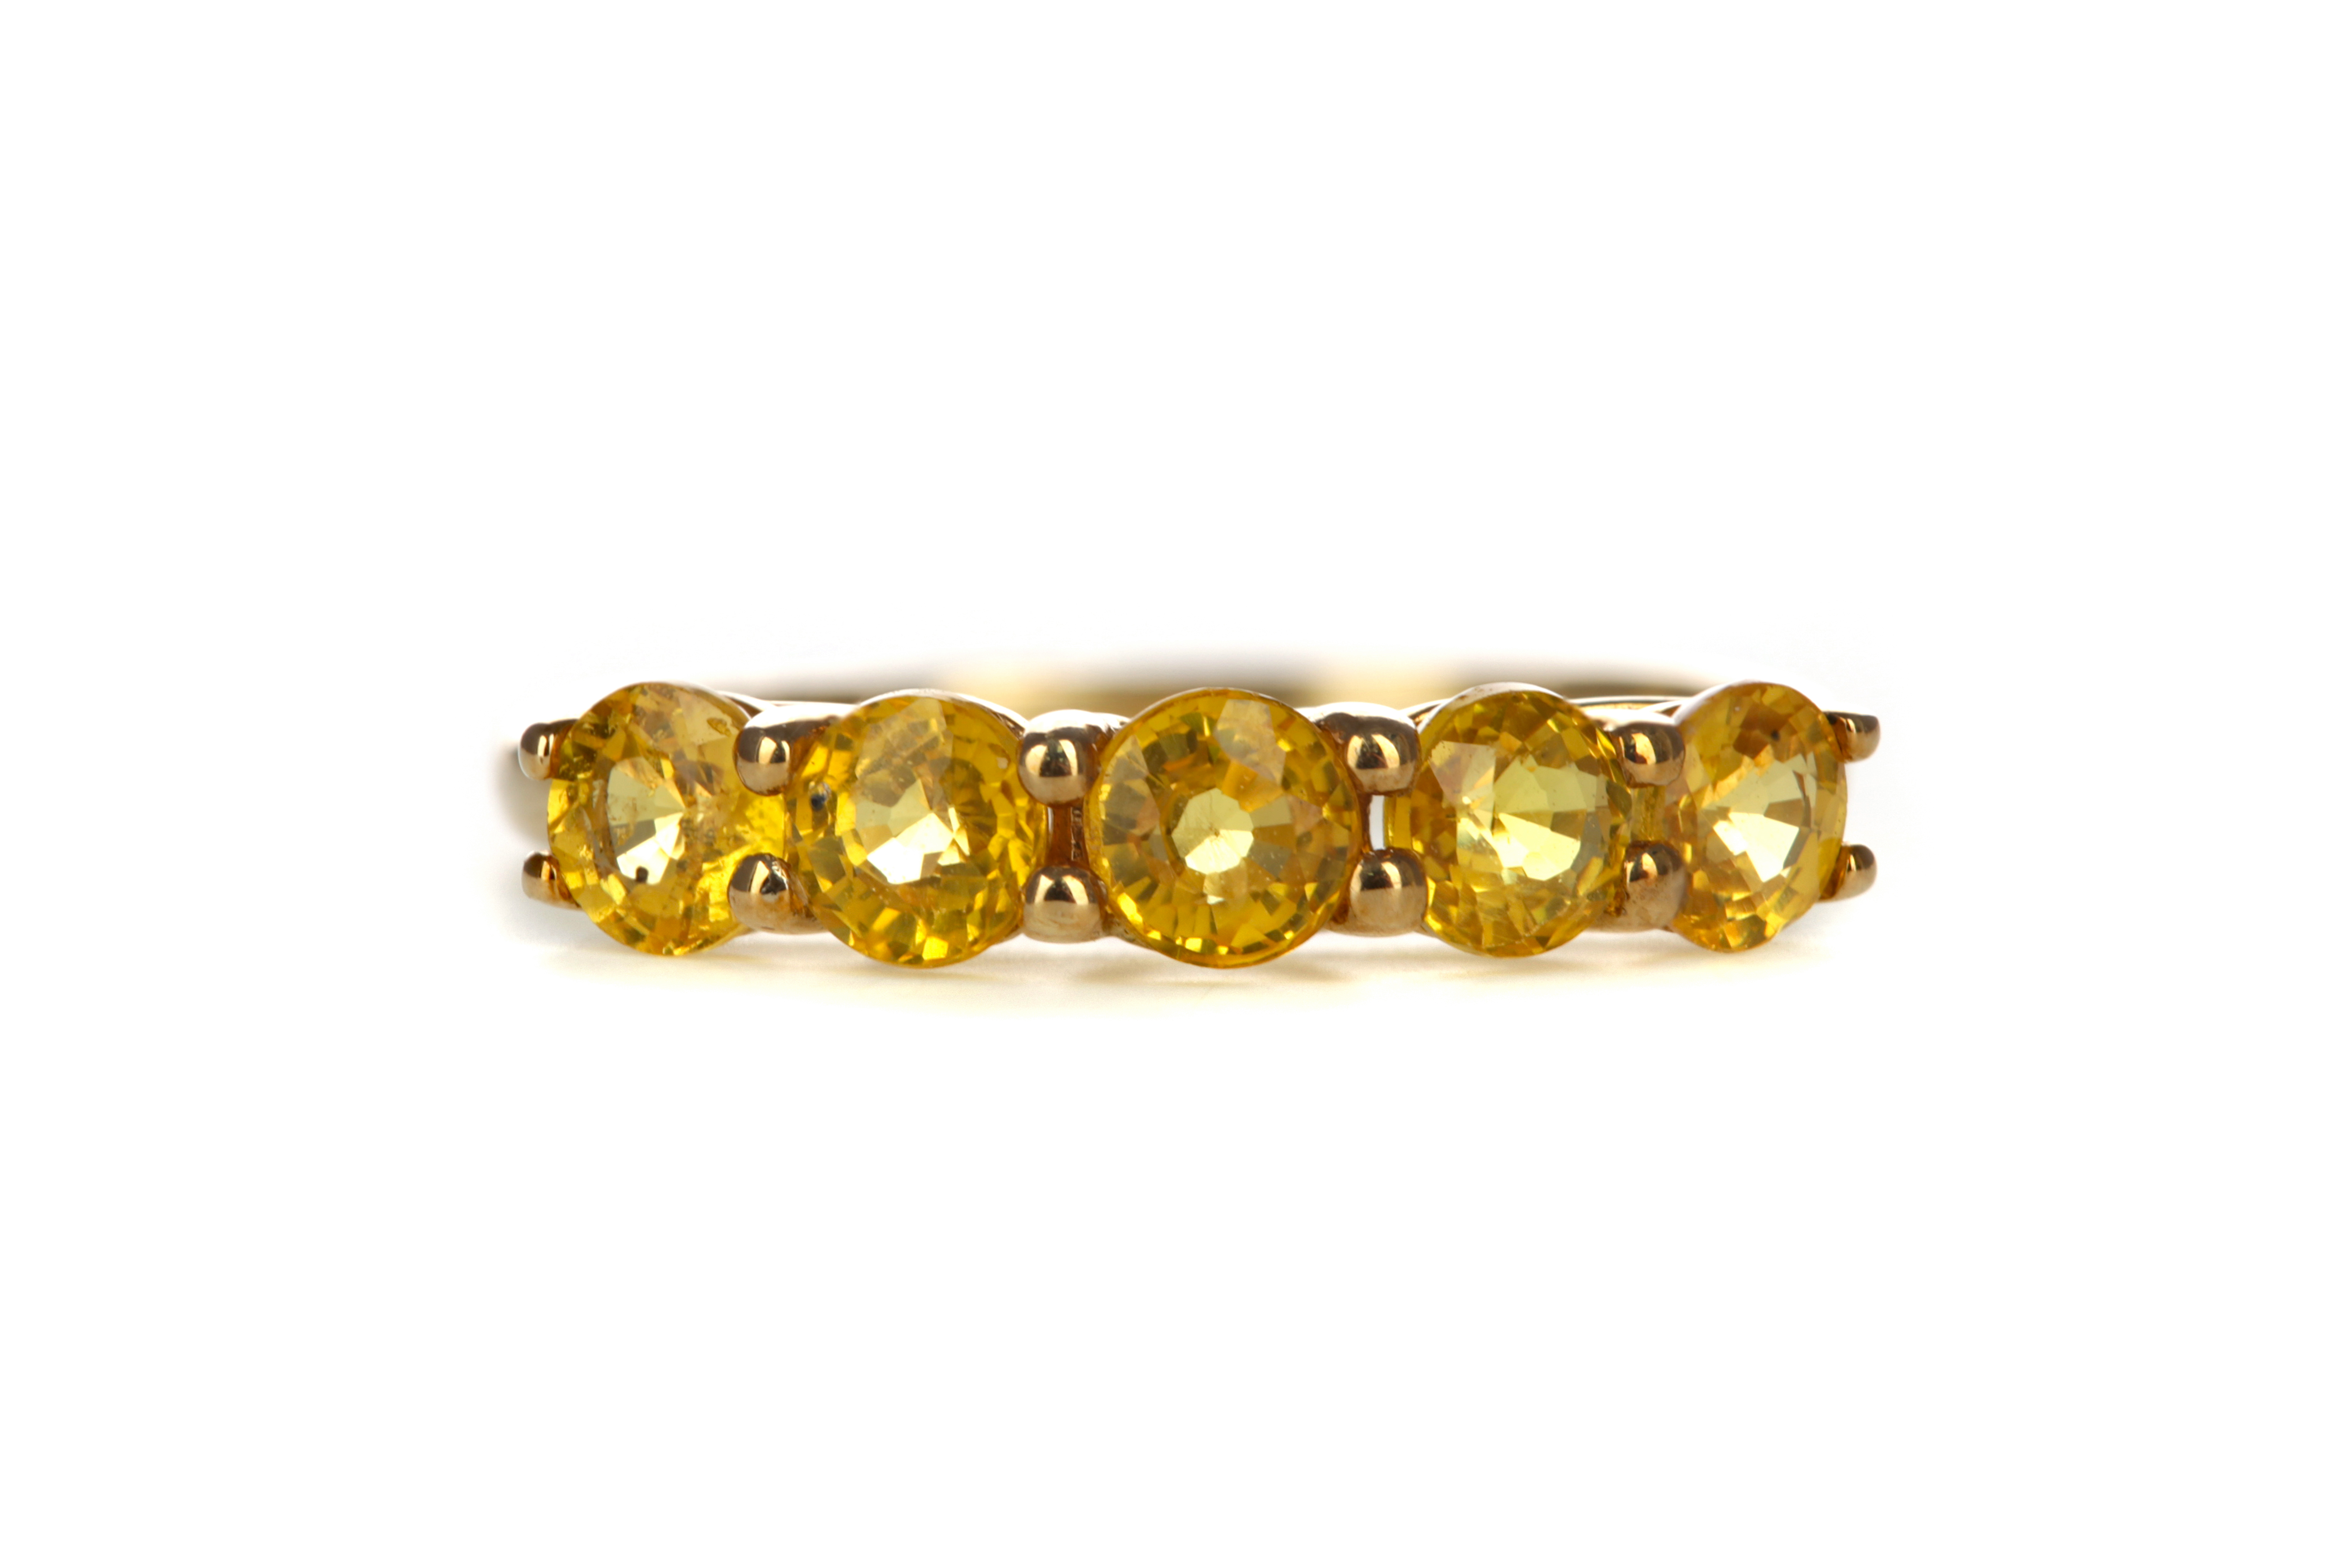 A TREATED YELLOW SAPPHIRE RING